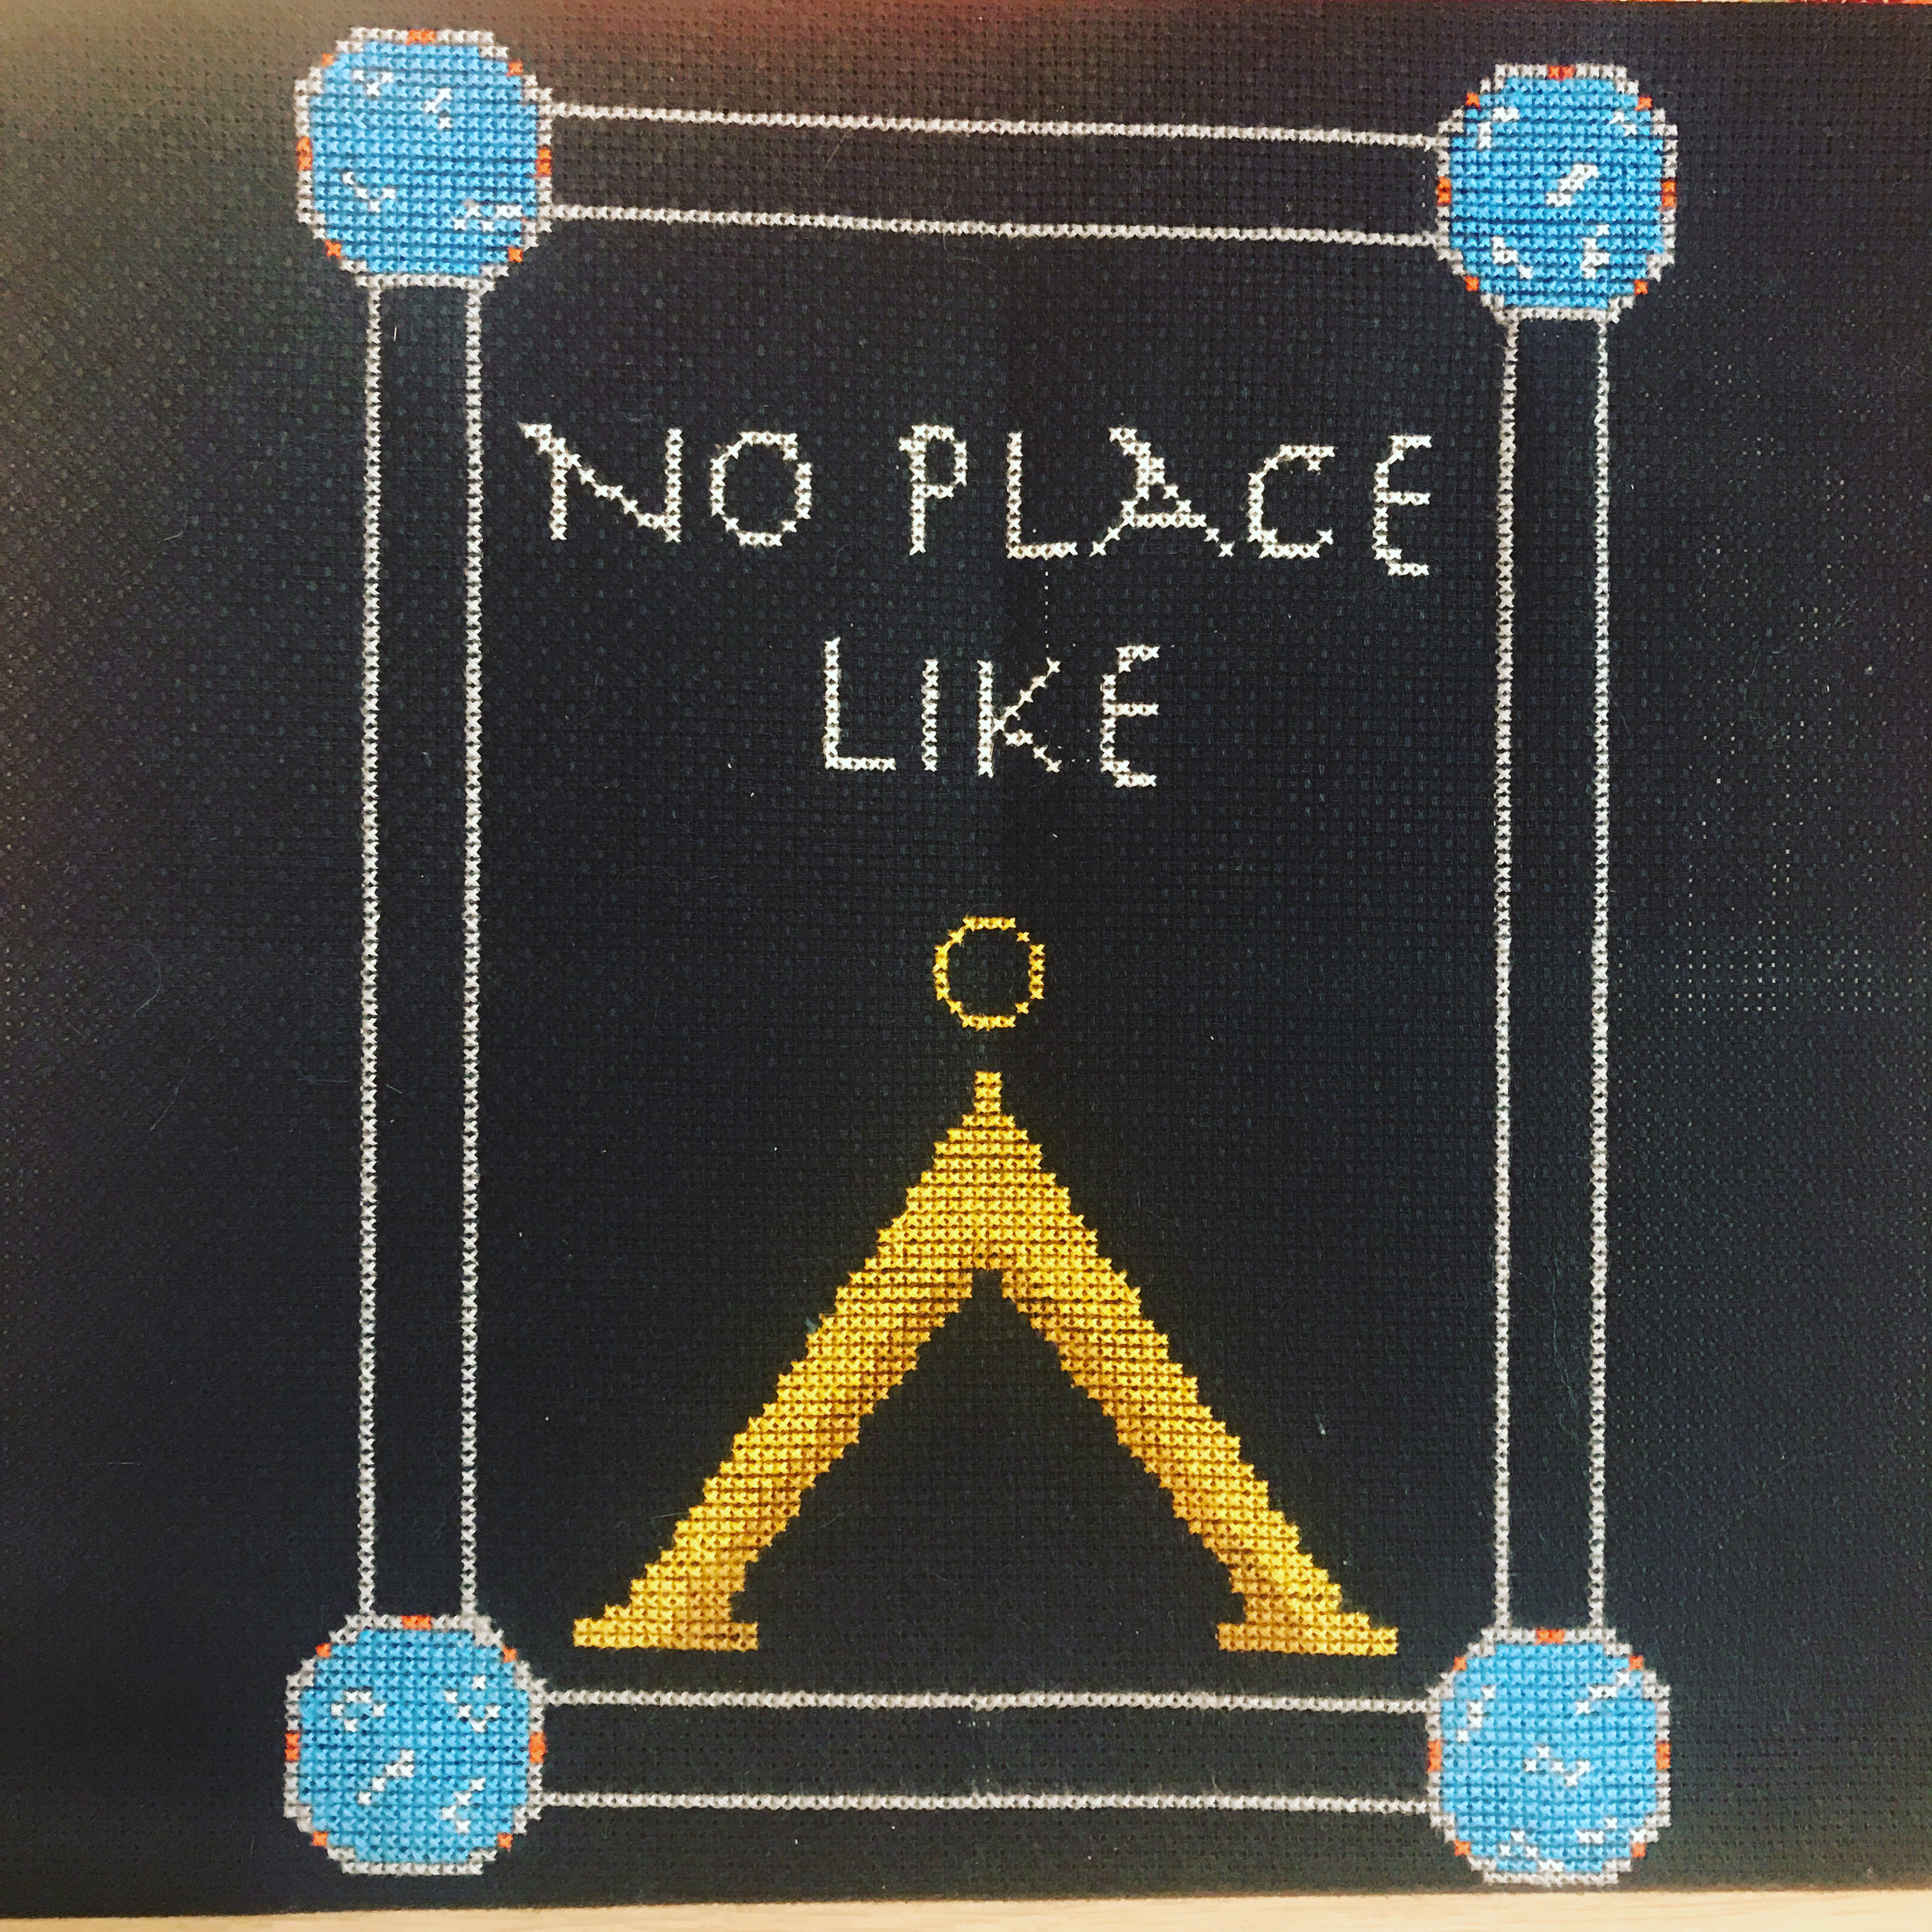 """Cross stitch project reading """"No place like home"""" with the Stargate symbol for Earth in place of the word """"home"""""""